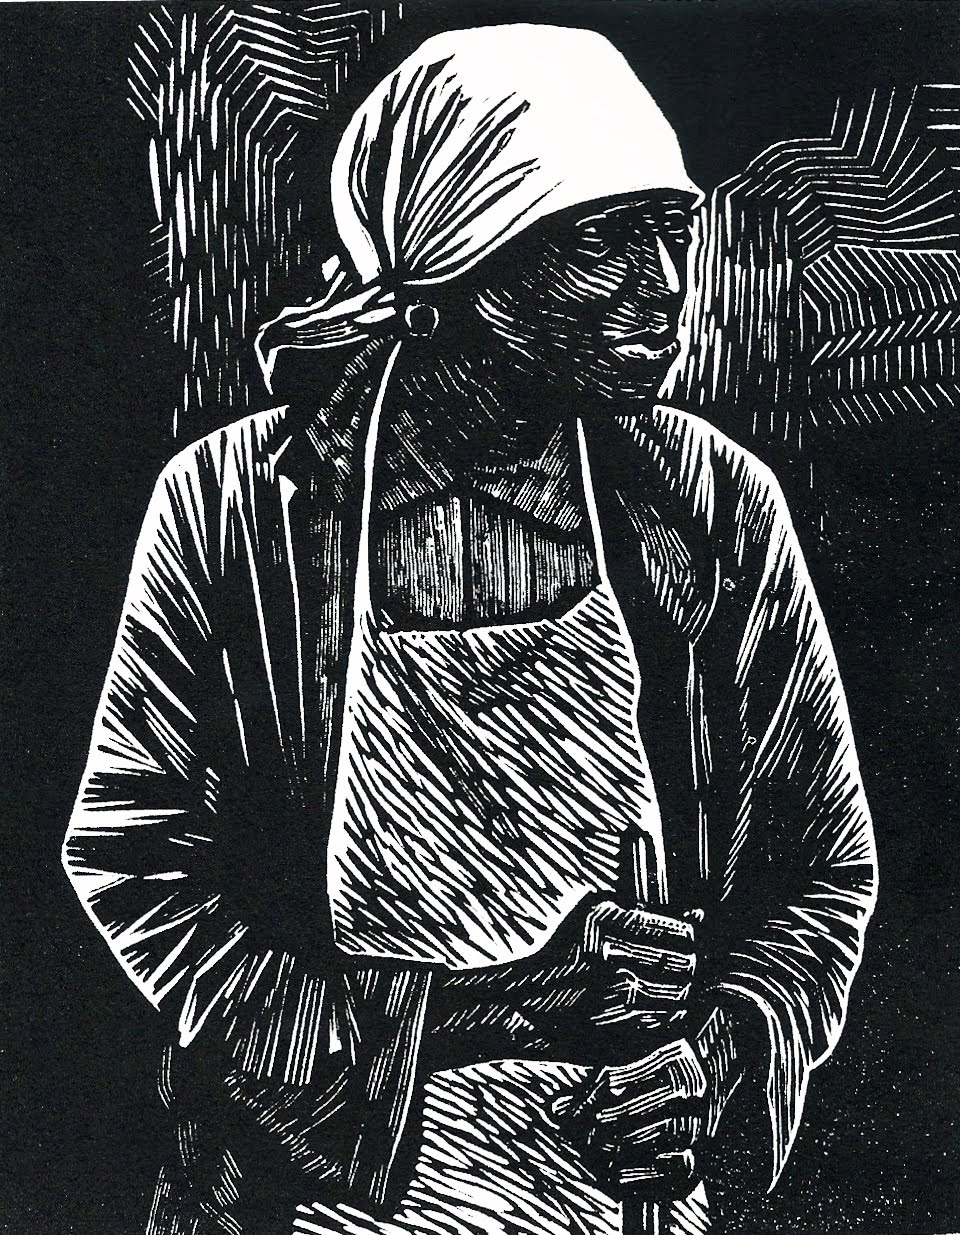 The Life and Memory of Elizabeth Catlett